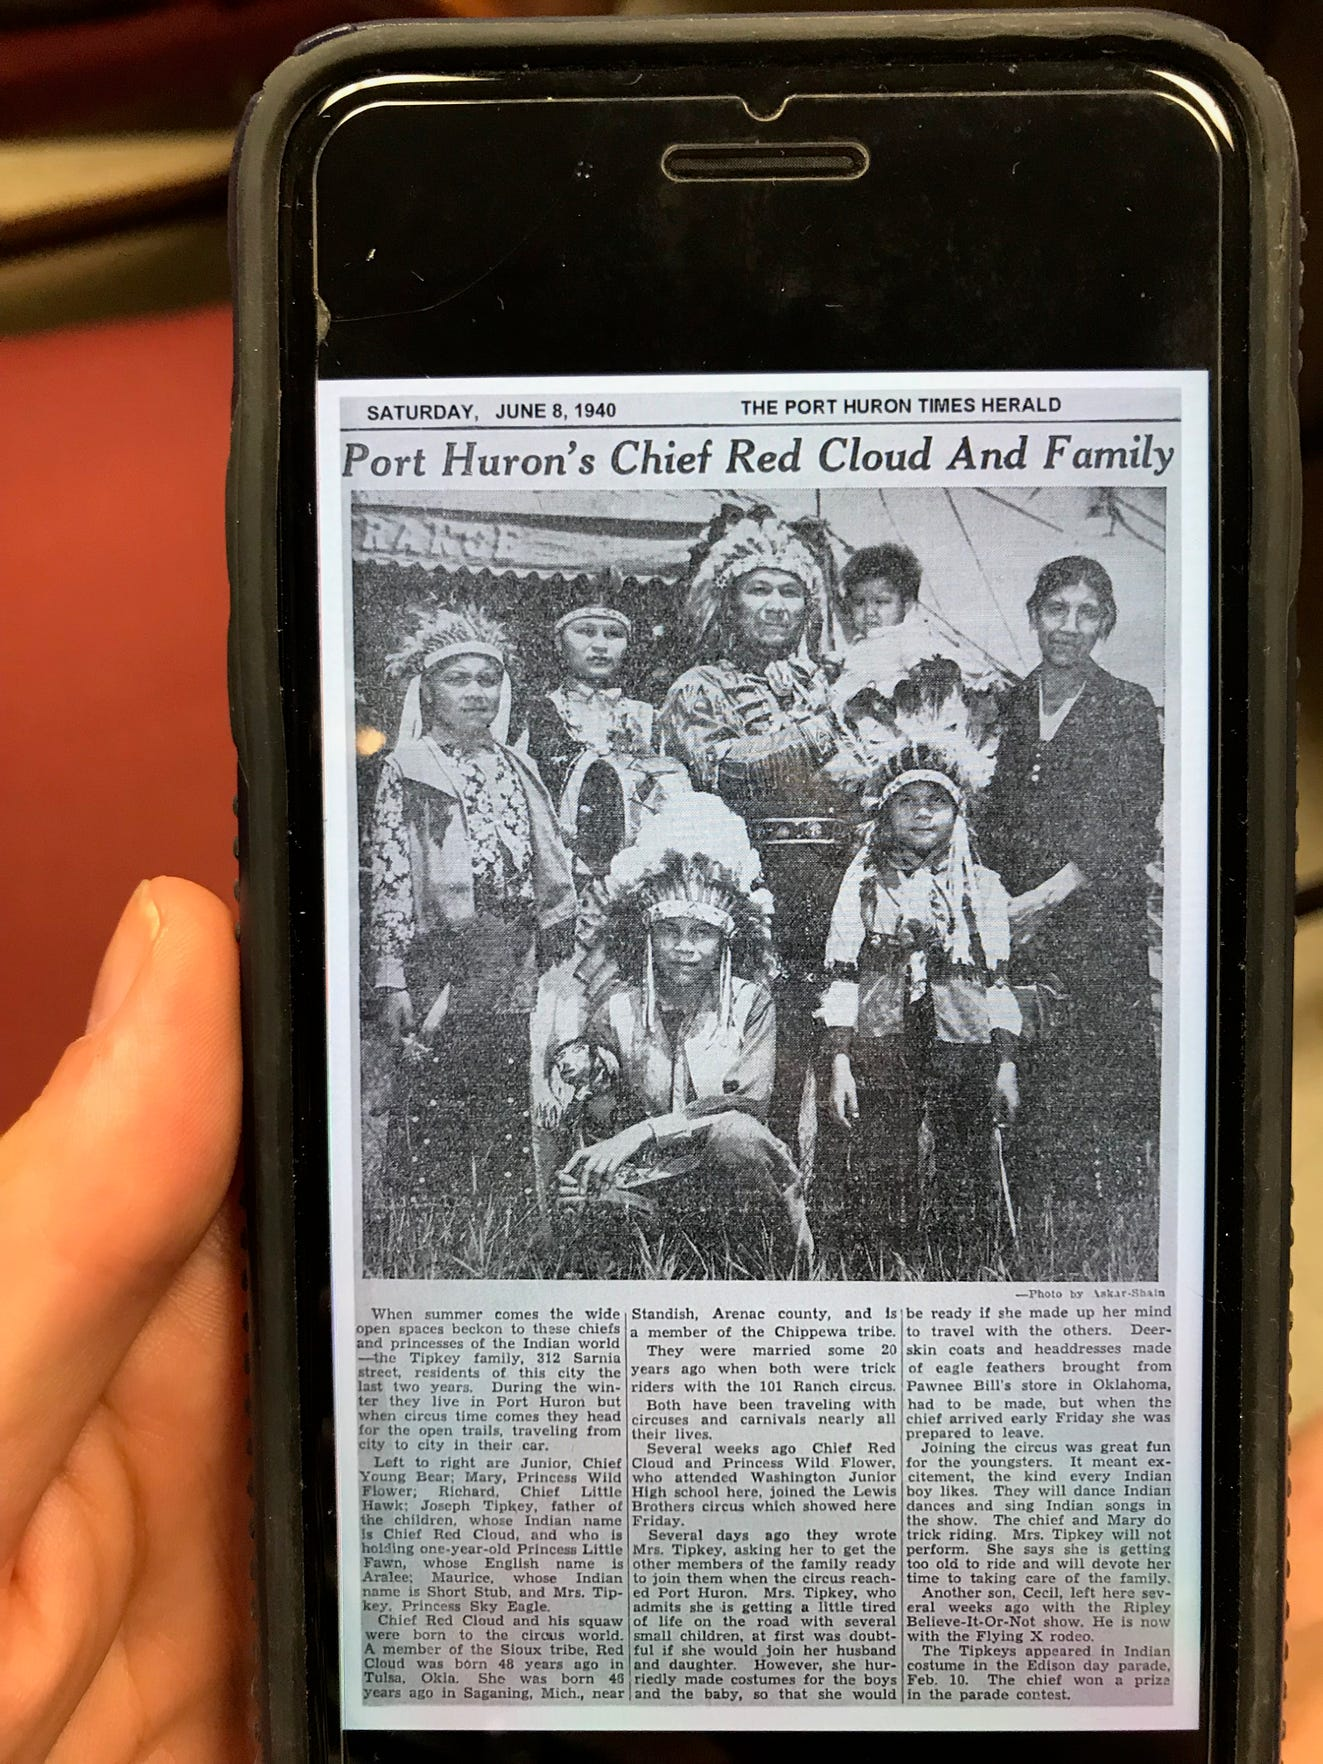 Joan Tipkey Jacobs shows an image of a 1940 Times Herald article about her family on her phone following a meeting at the Port Huron Museum on Thursday, Aug. 1, 2019. She said she'd relatives who were teachers that shared their heritage, adding she and her husband try to do something similar.